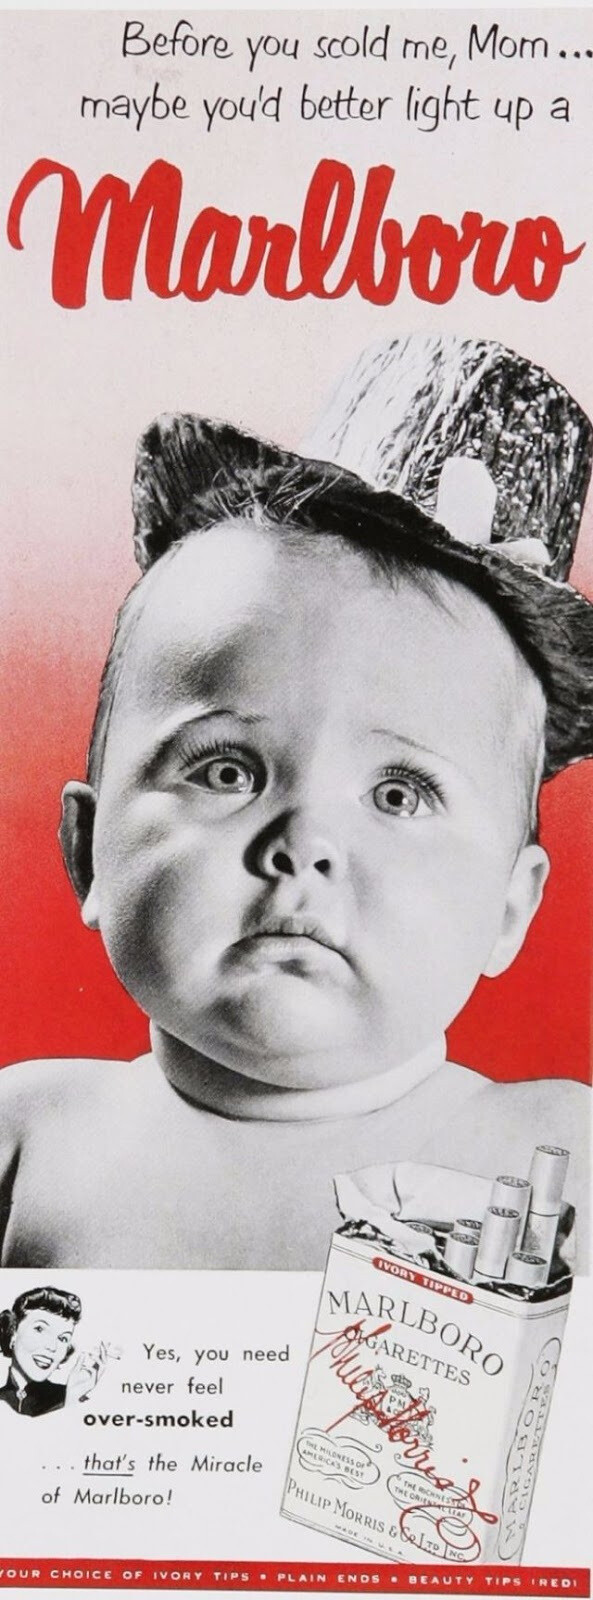 CLUB GIGGLE creepy-ads12 Top 24 Vintage Ads With Creepy Children....